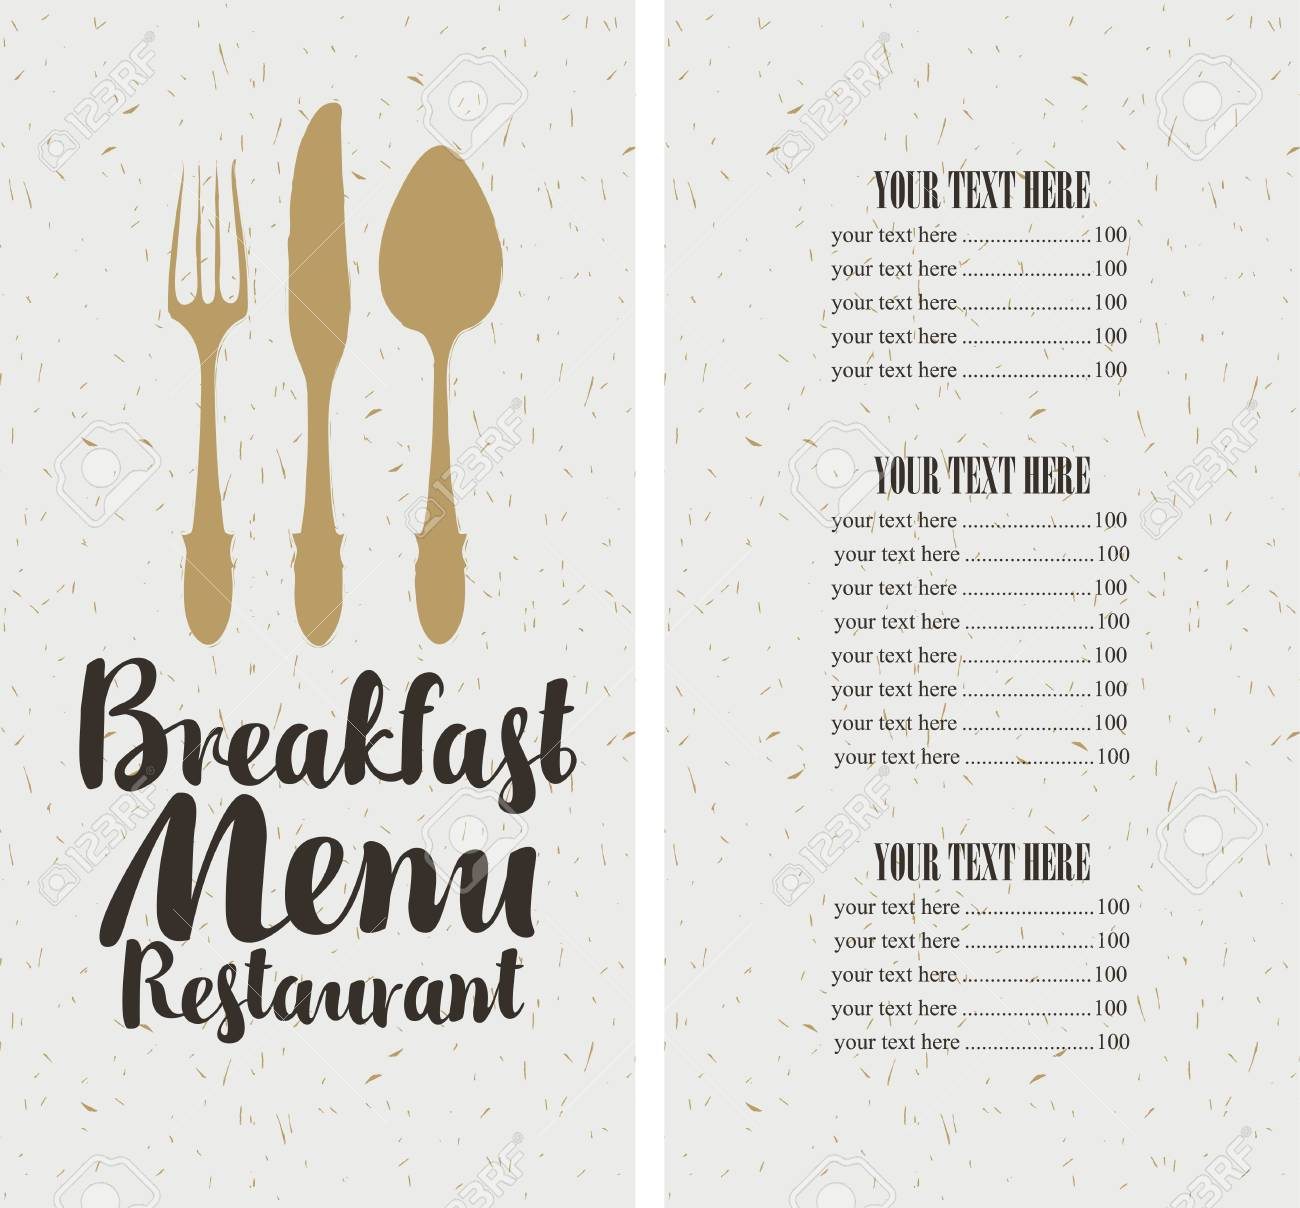 vector vector restaurant and cafe breakfast menu template with cutlery and price